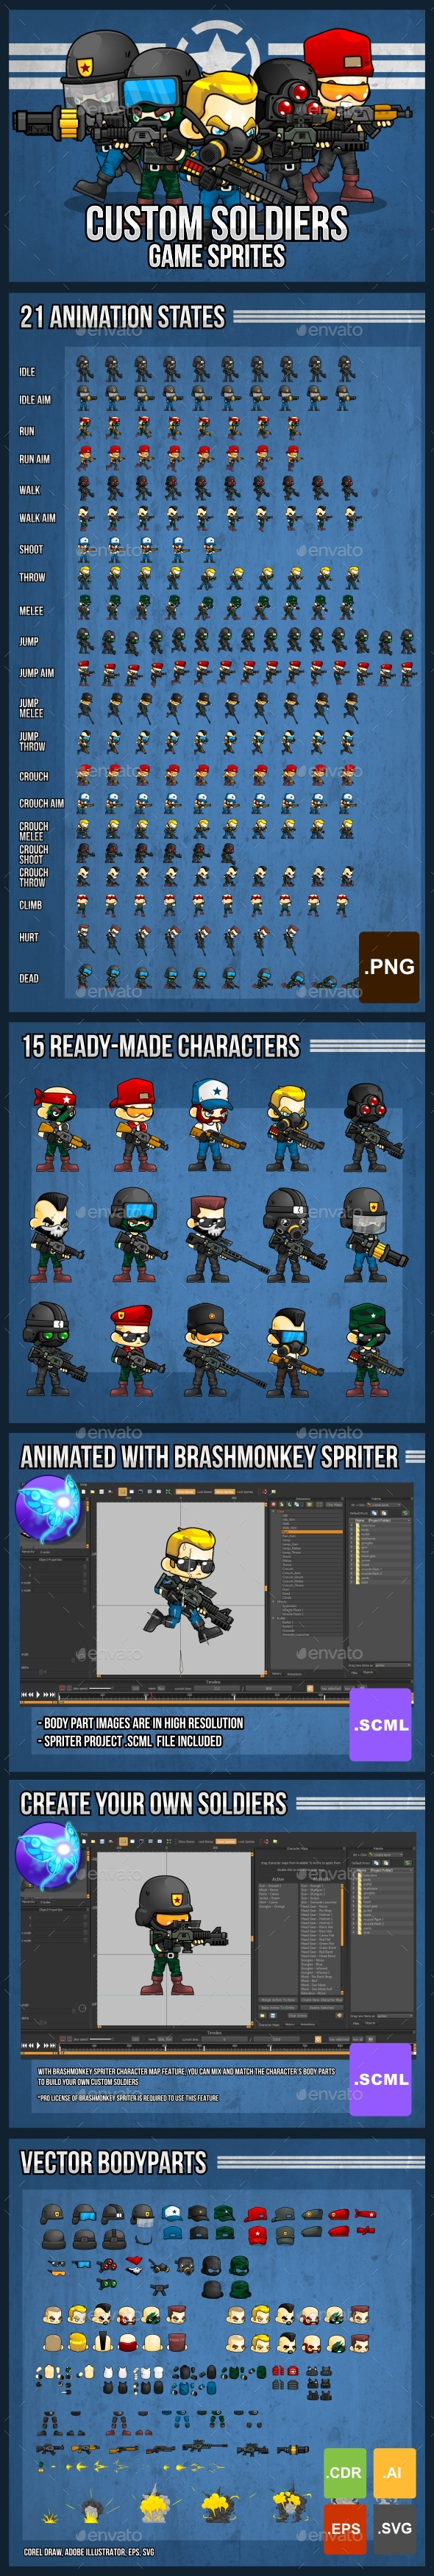 Game Sprites & Sheet Templates from GraphicRiver